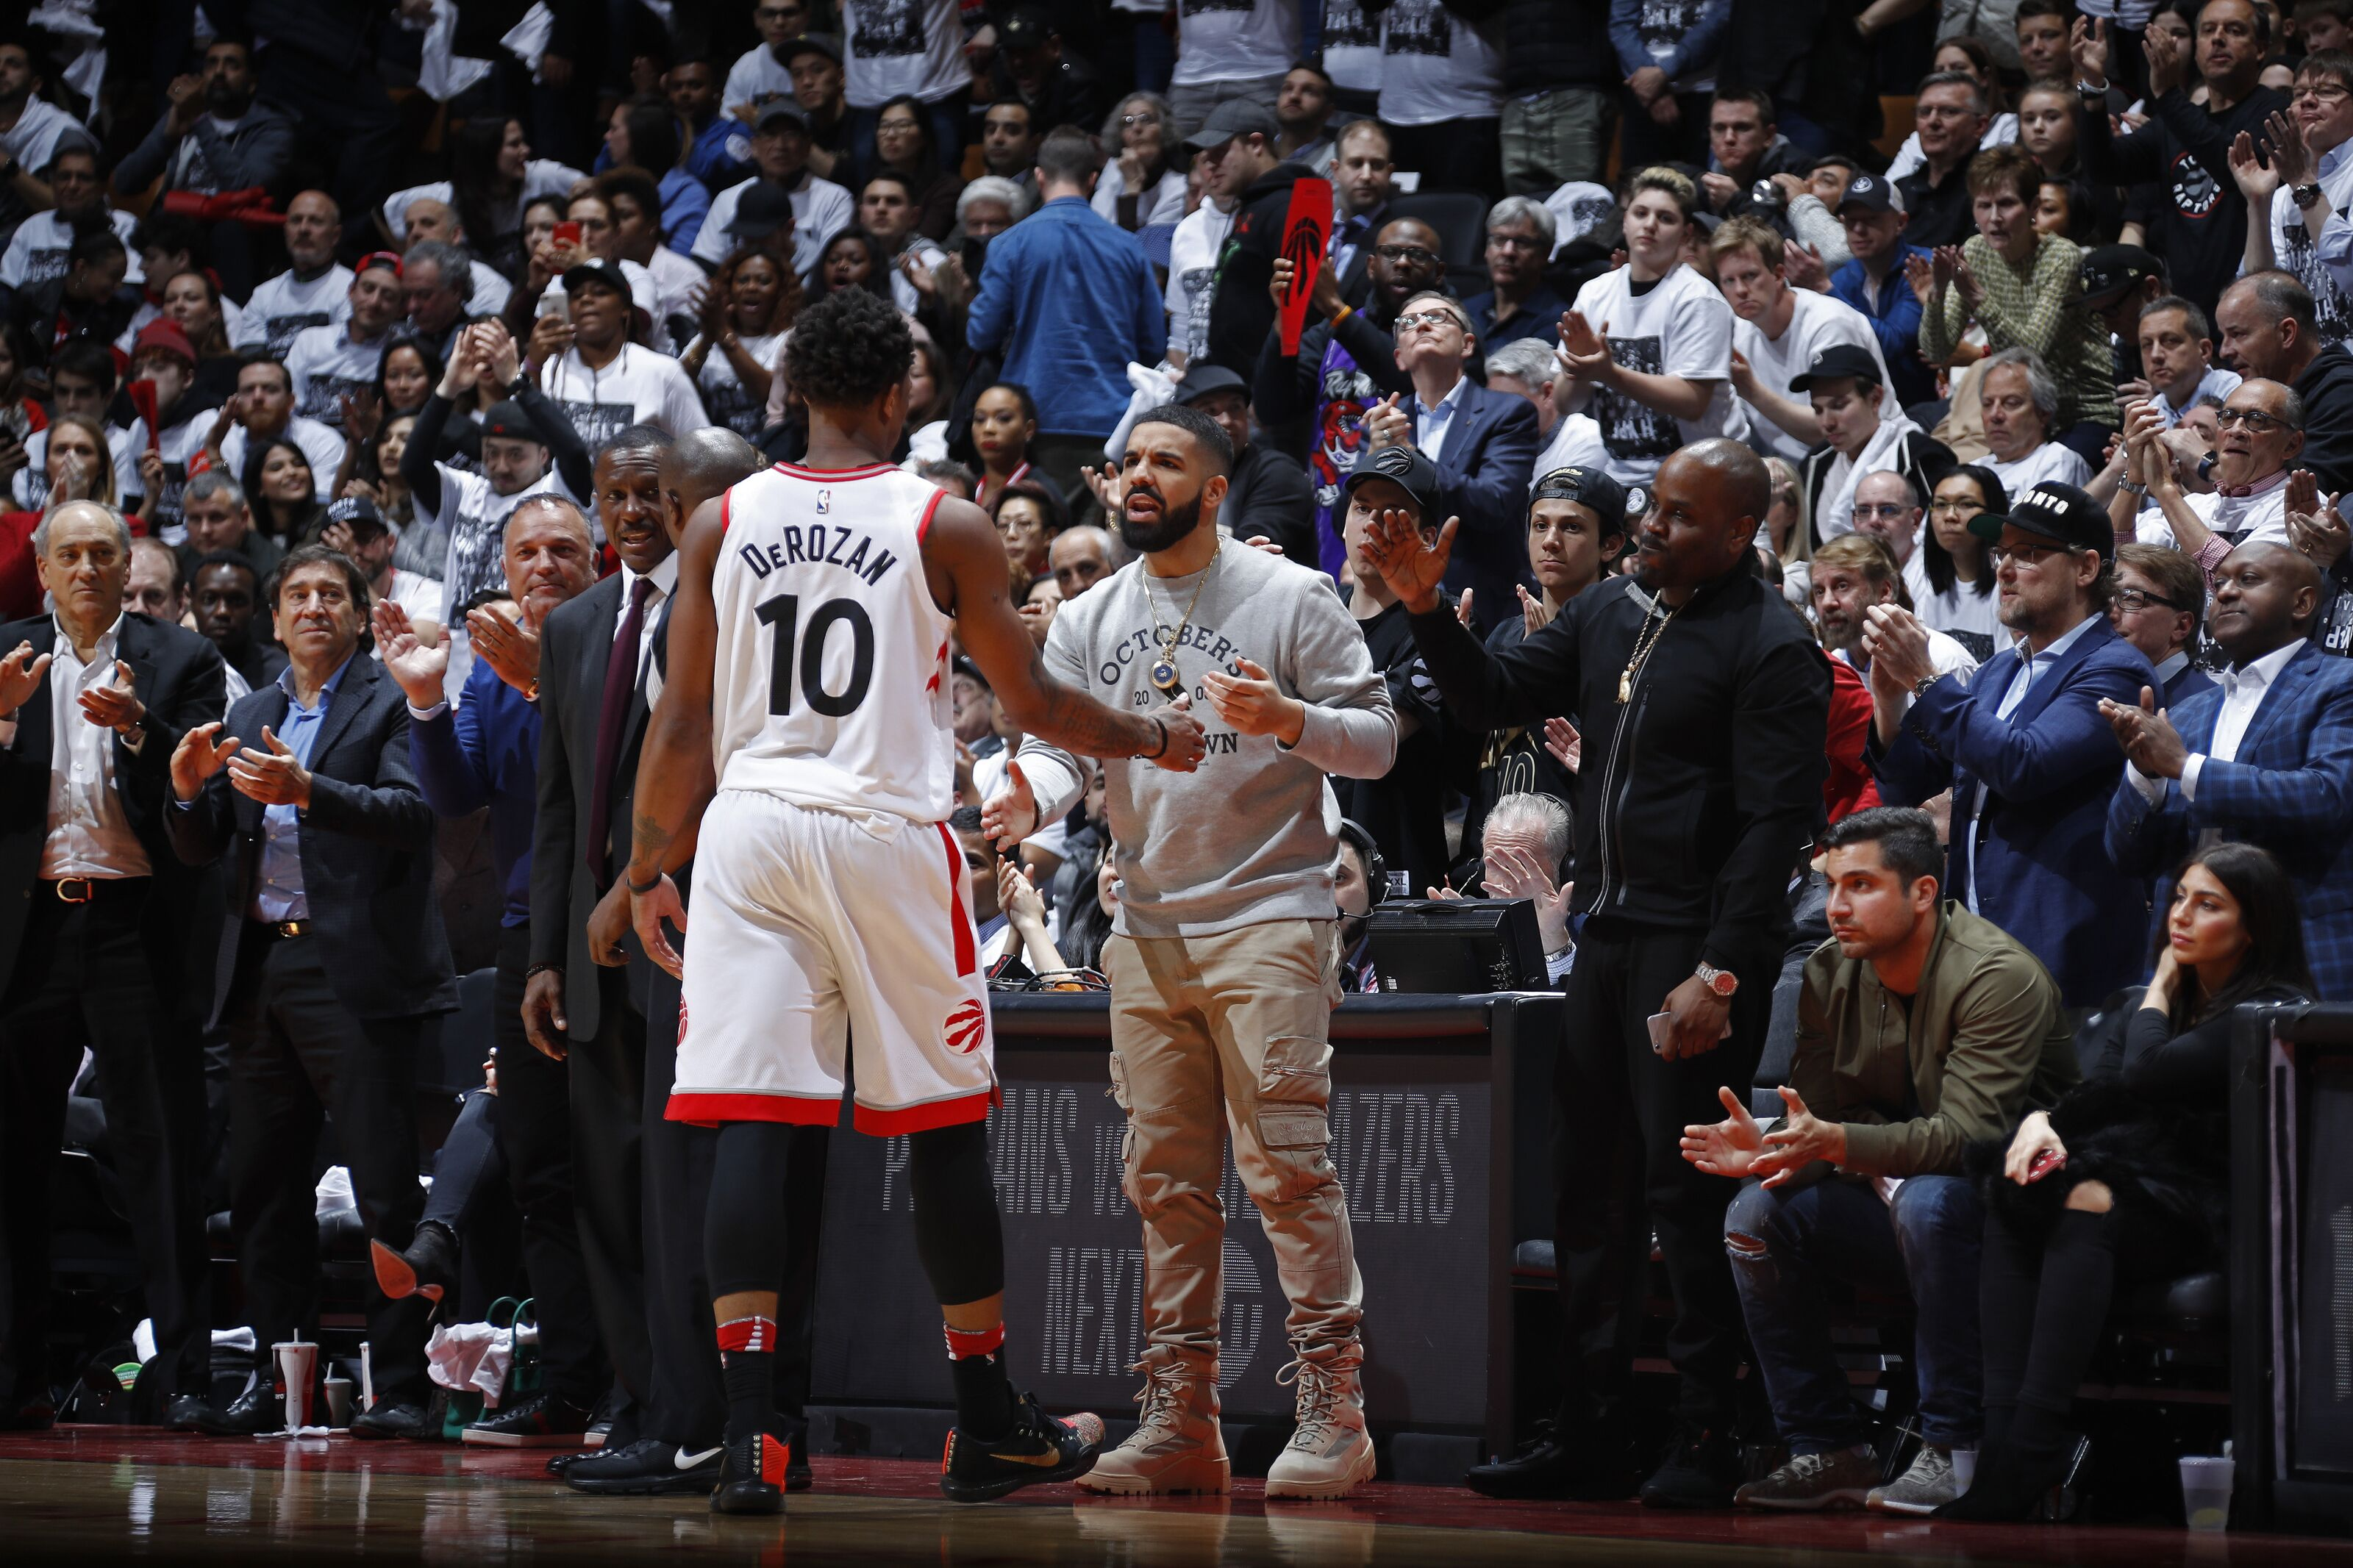 948268006-washington-wizards-v-toronto-raptors-game-two.jpg